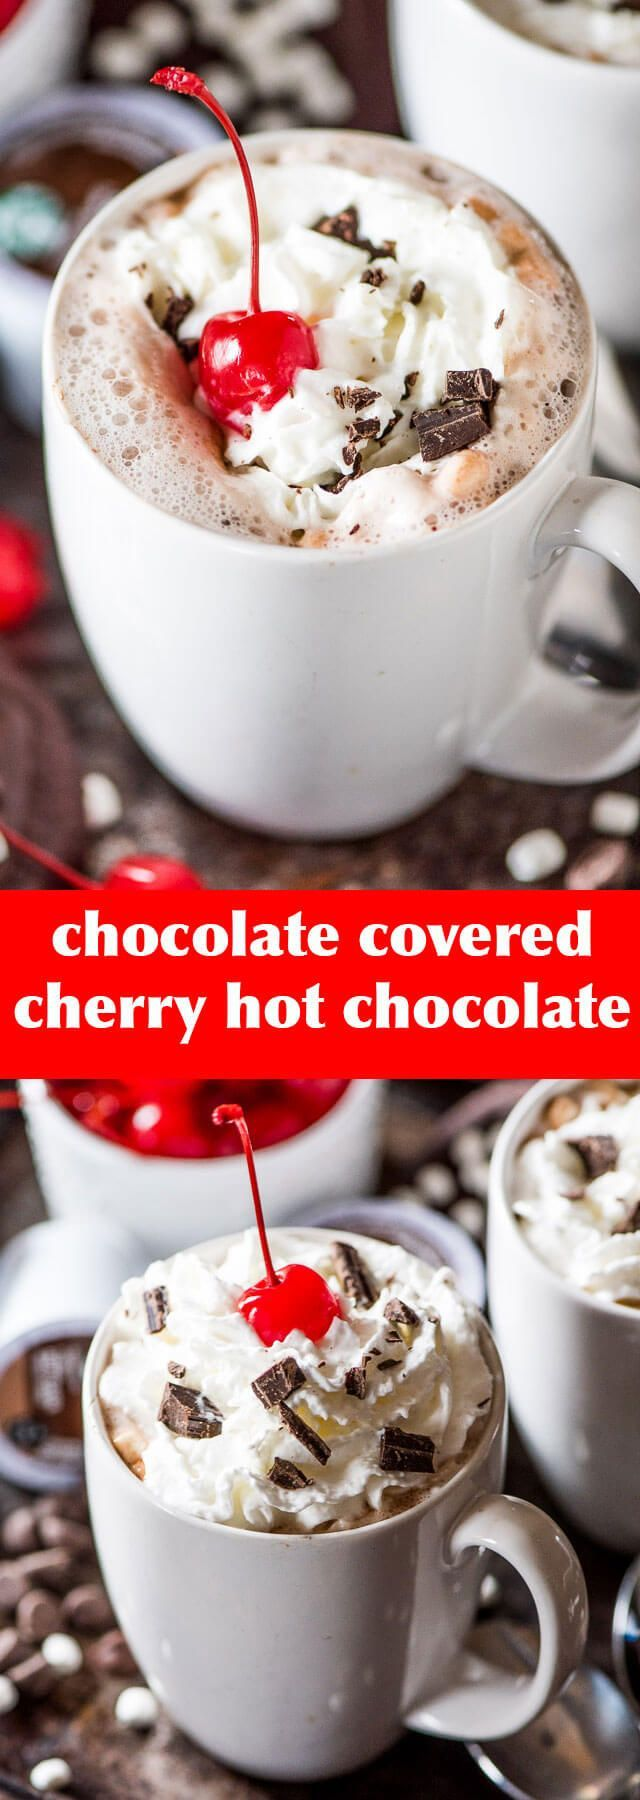 Rich & creamy chocolate covered cherry hot chocolate. The easiest hot cocoa recipe you'll make! Top with whipped cream and chocolate shavings.